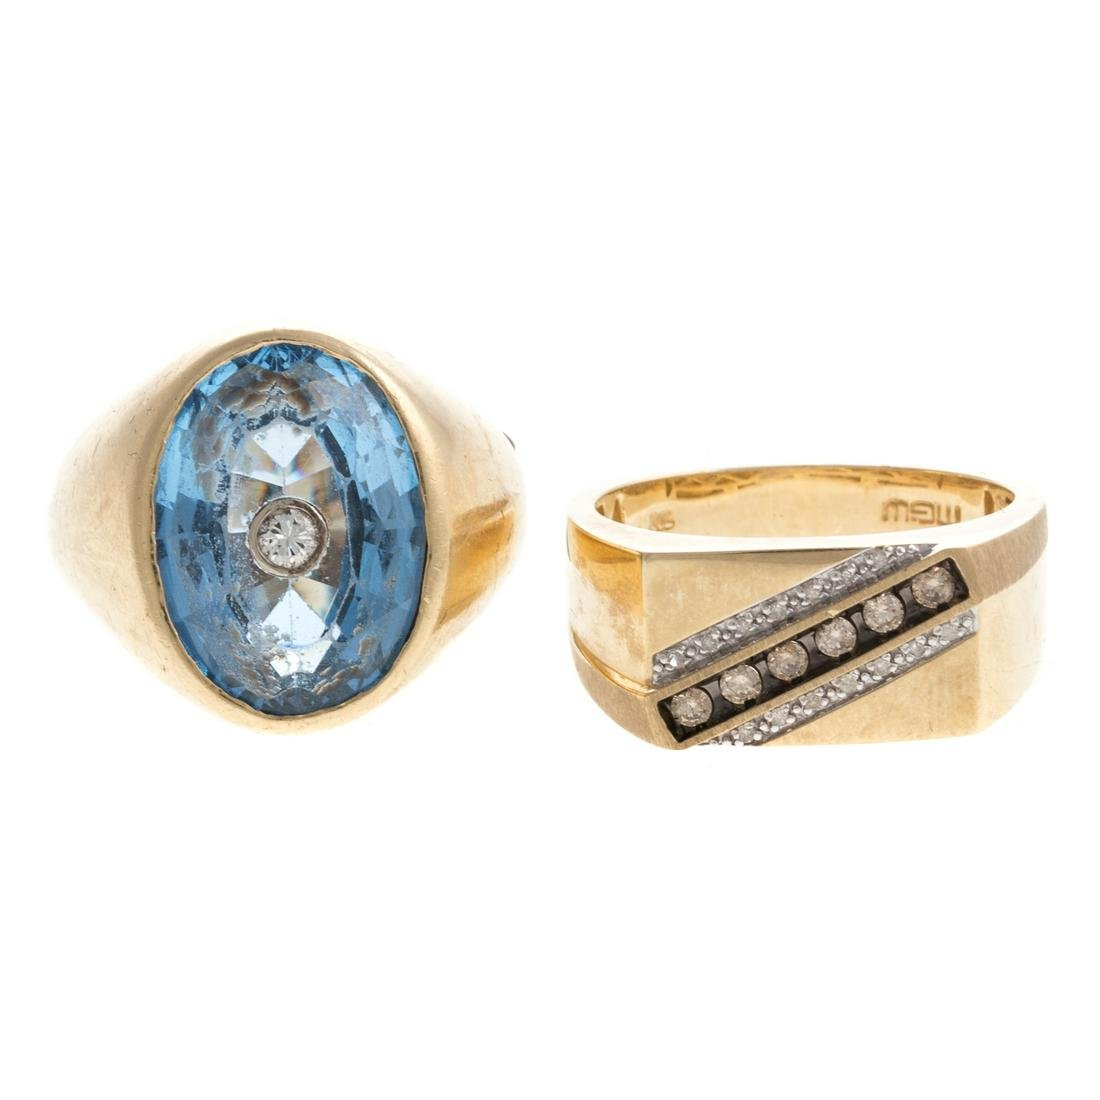 Two Gentlemen's Rings with Diamonds in Gold